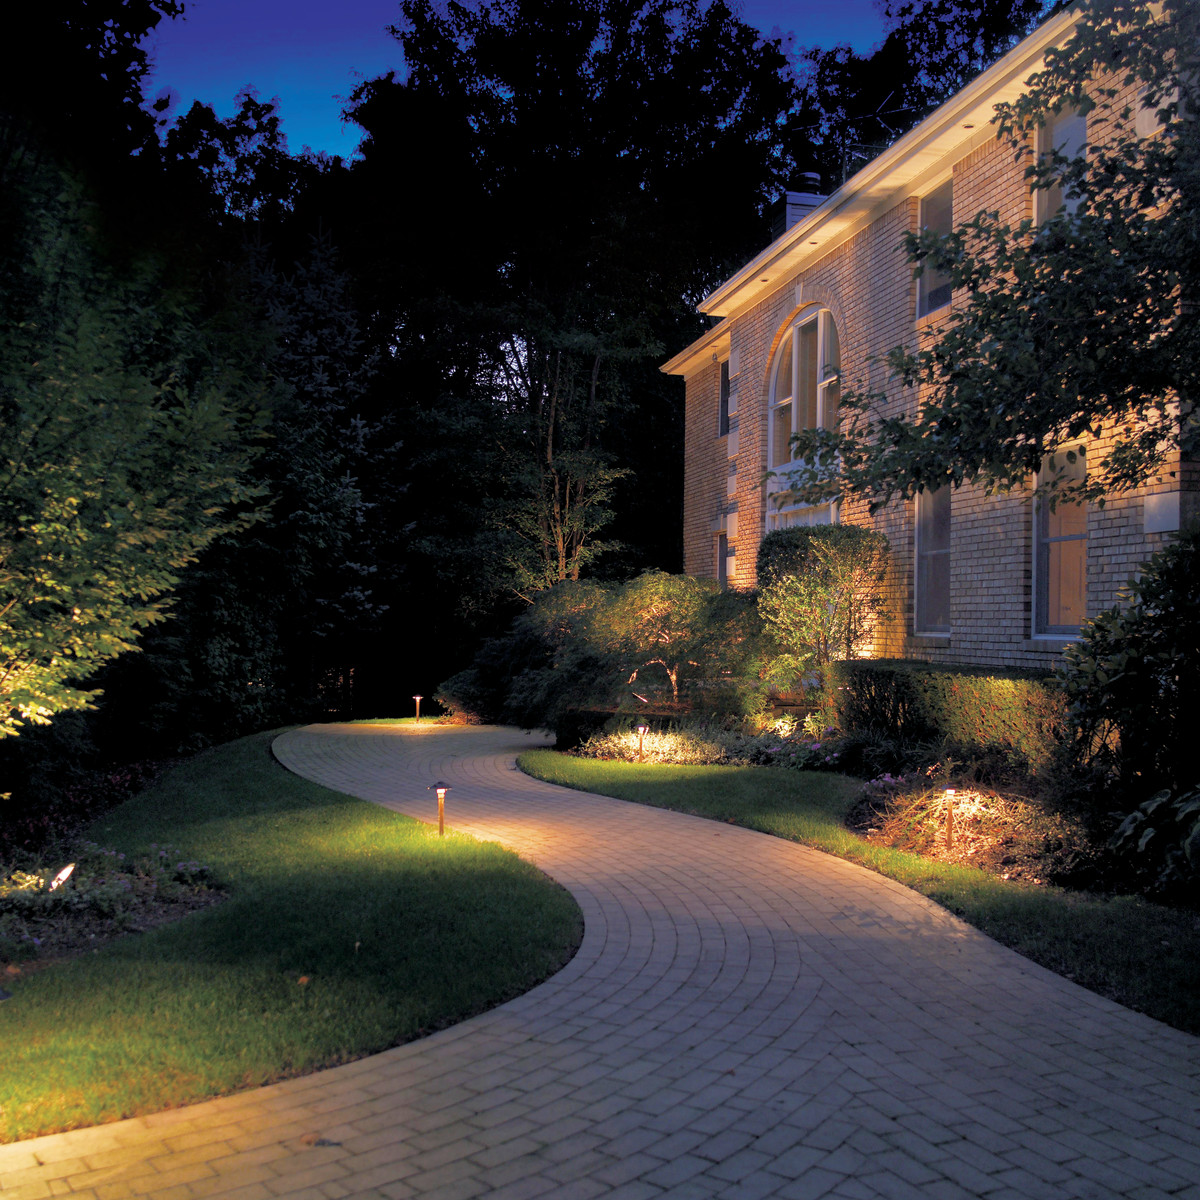 Lighting fixtures look nice during the day and create a beautiful landscape emphasis at night.